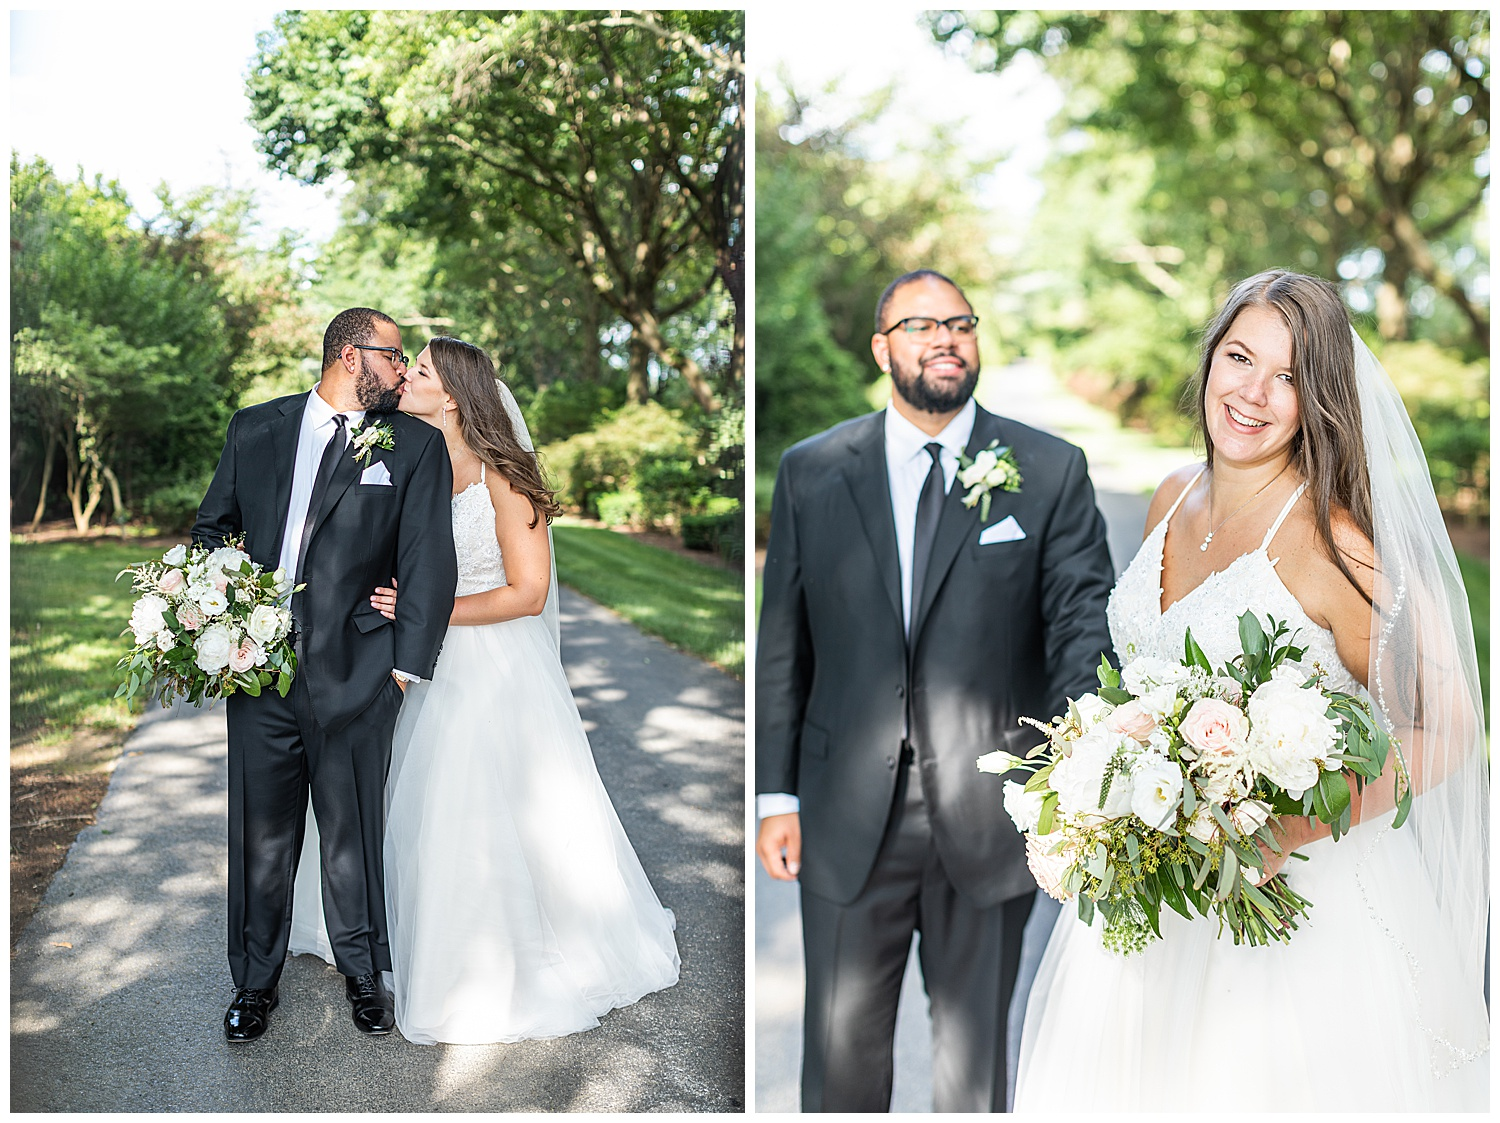 Brittany + Darryl Linwood Estate Wedding Living Radiant Photography photos_0103.jpg